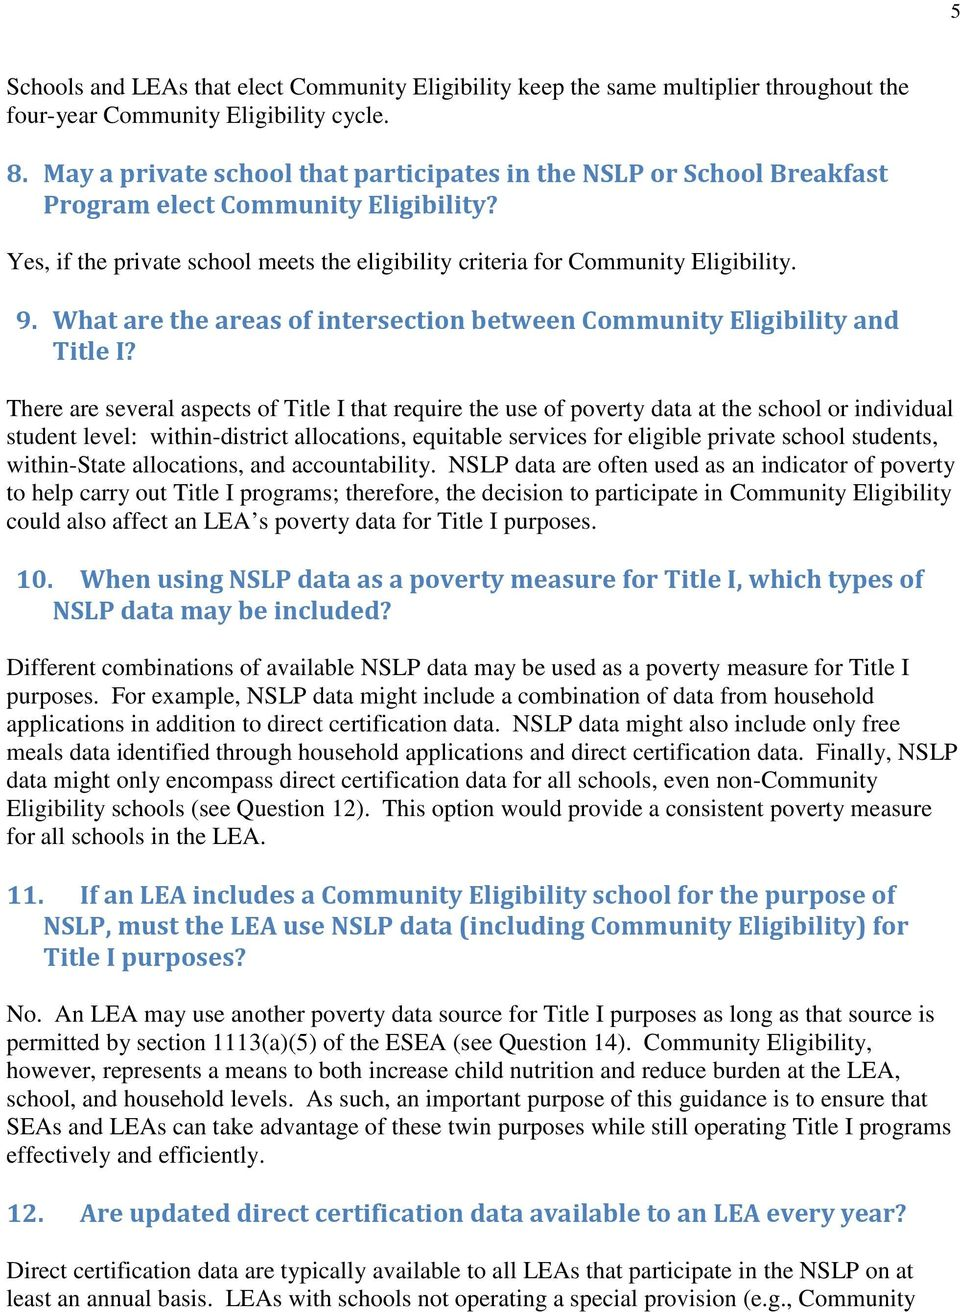 What are the areas of intersection between Community Eligibility and Title I?